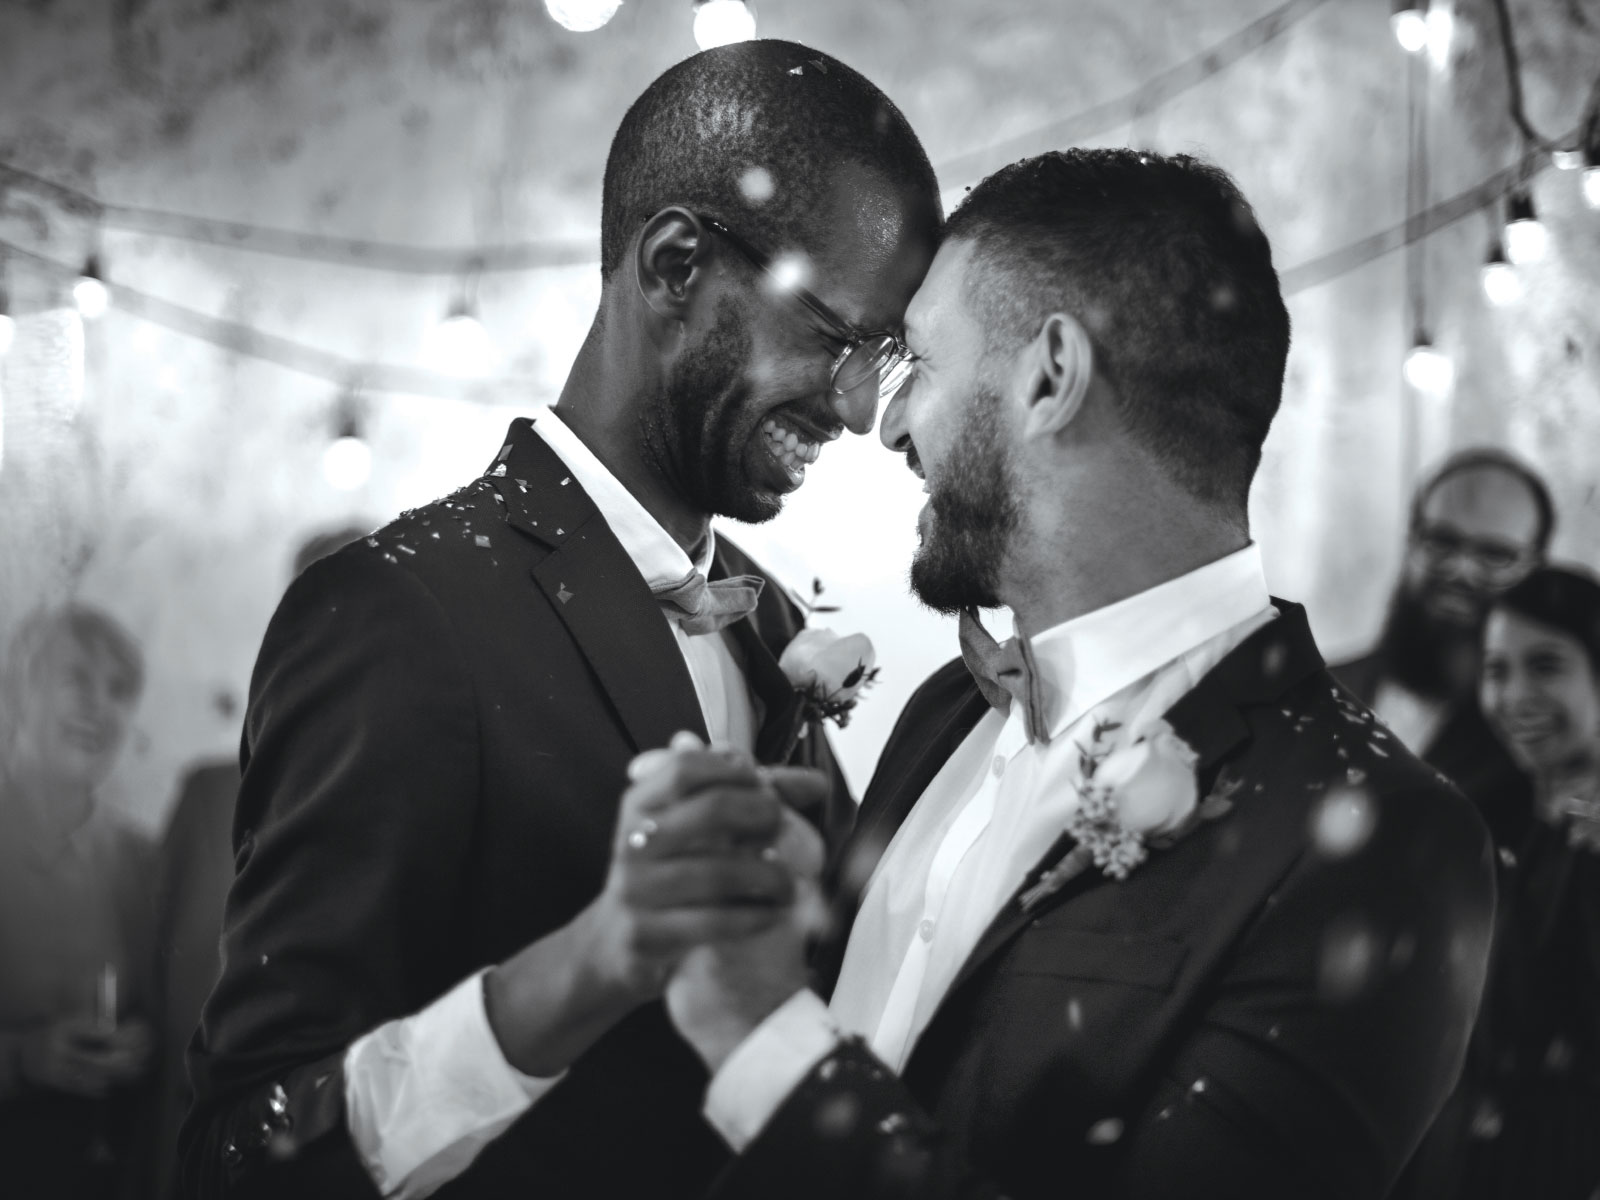 Two men dancing together at their wedding